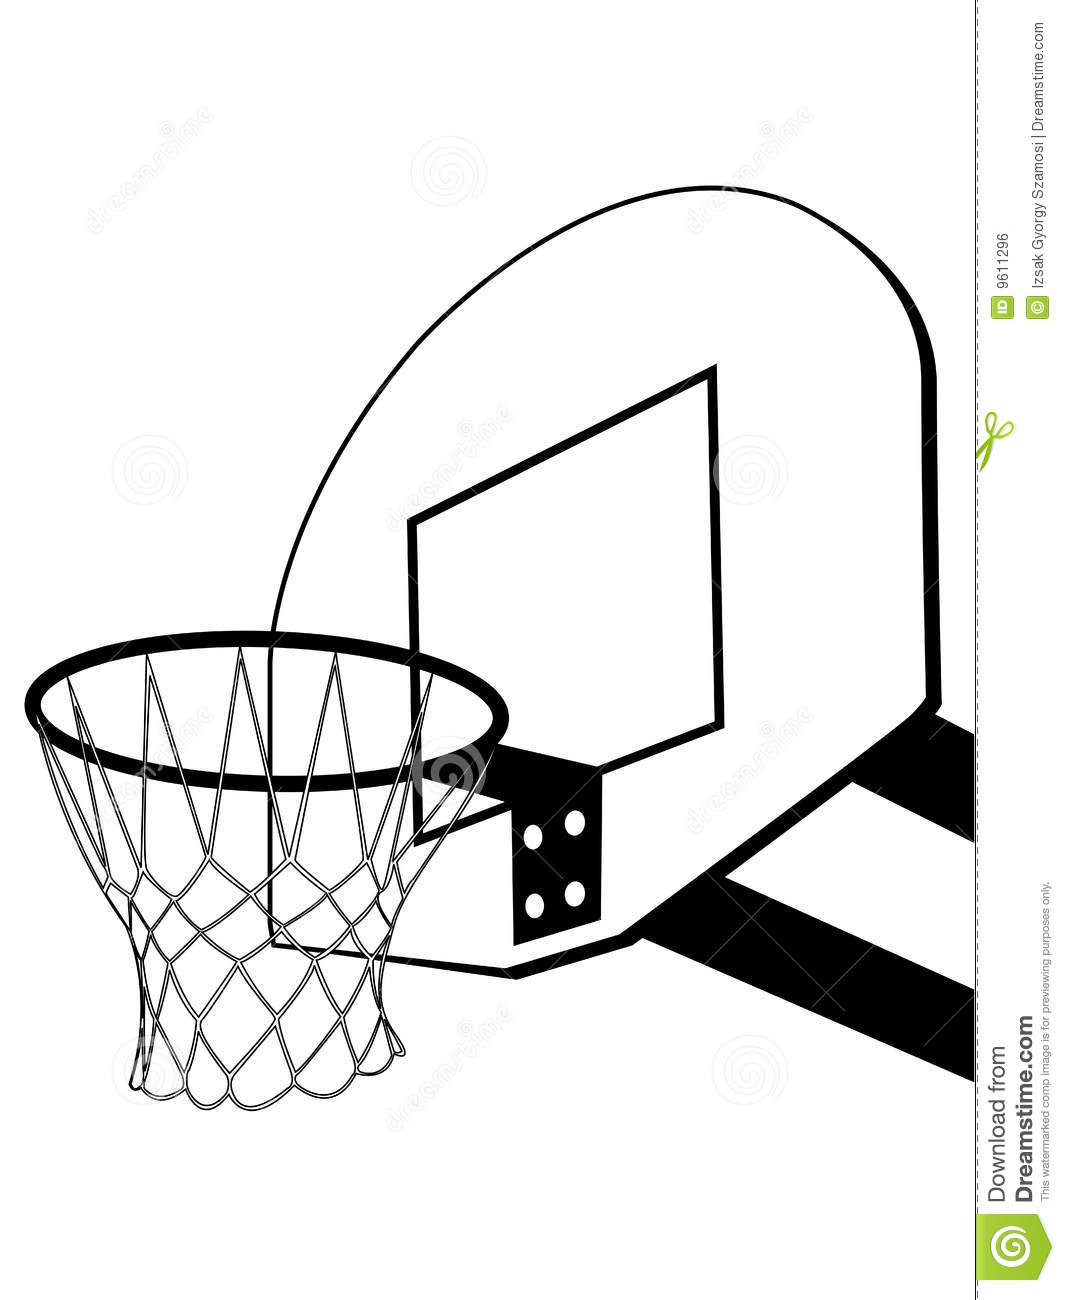 Black And White Basketball Backboard Clipart - Clipart Kid